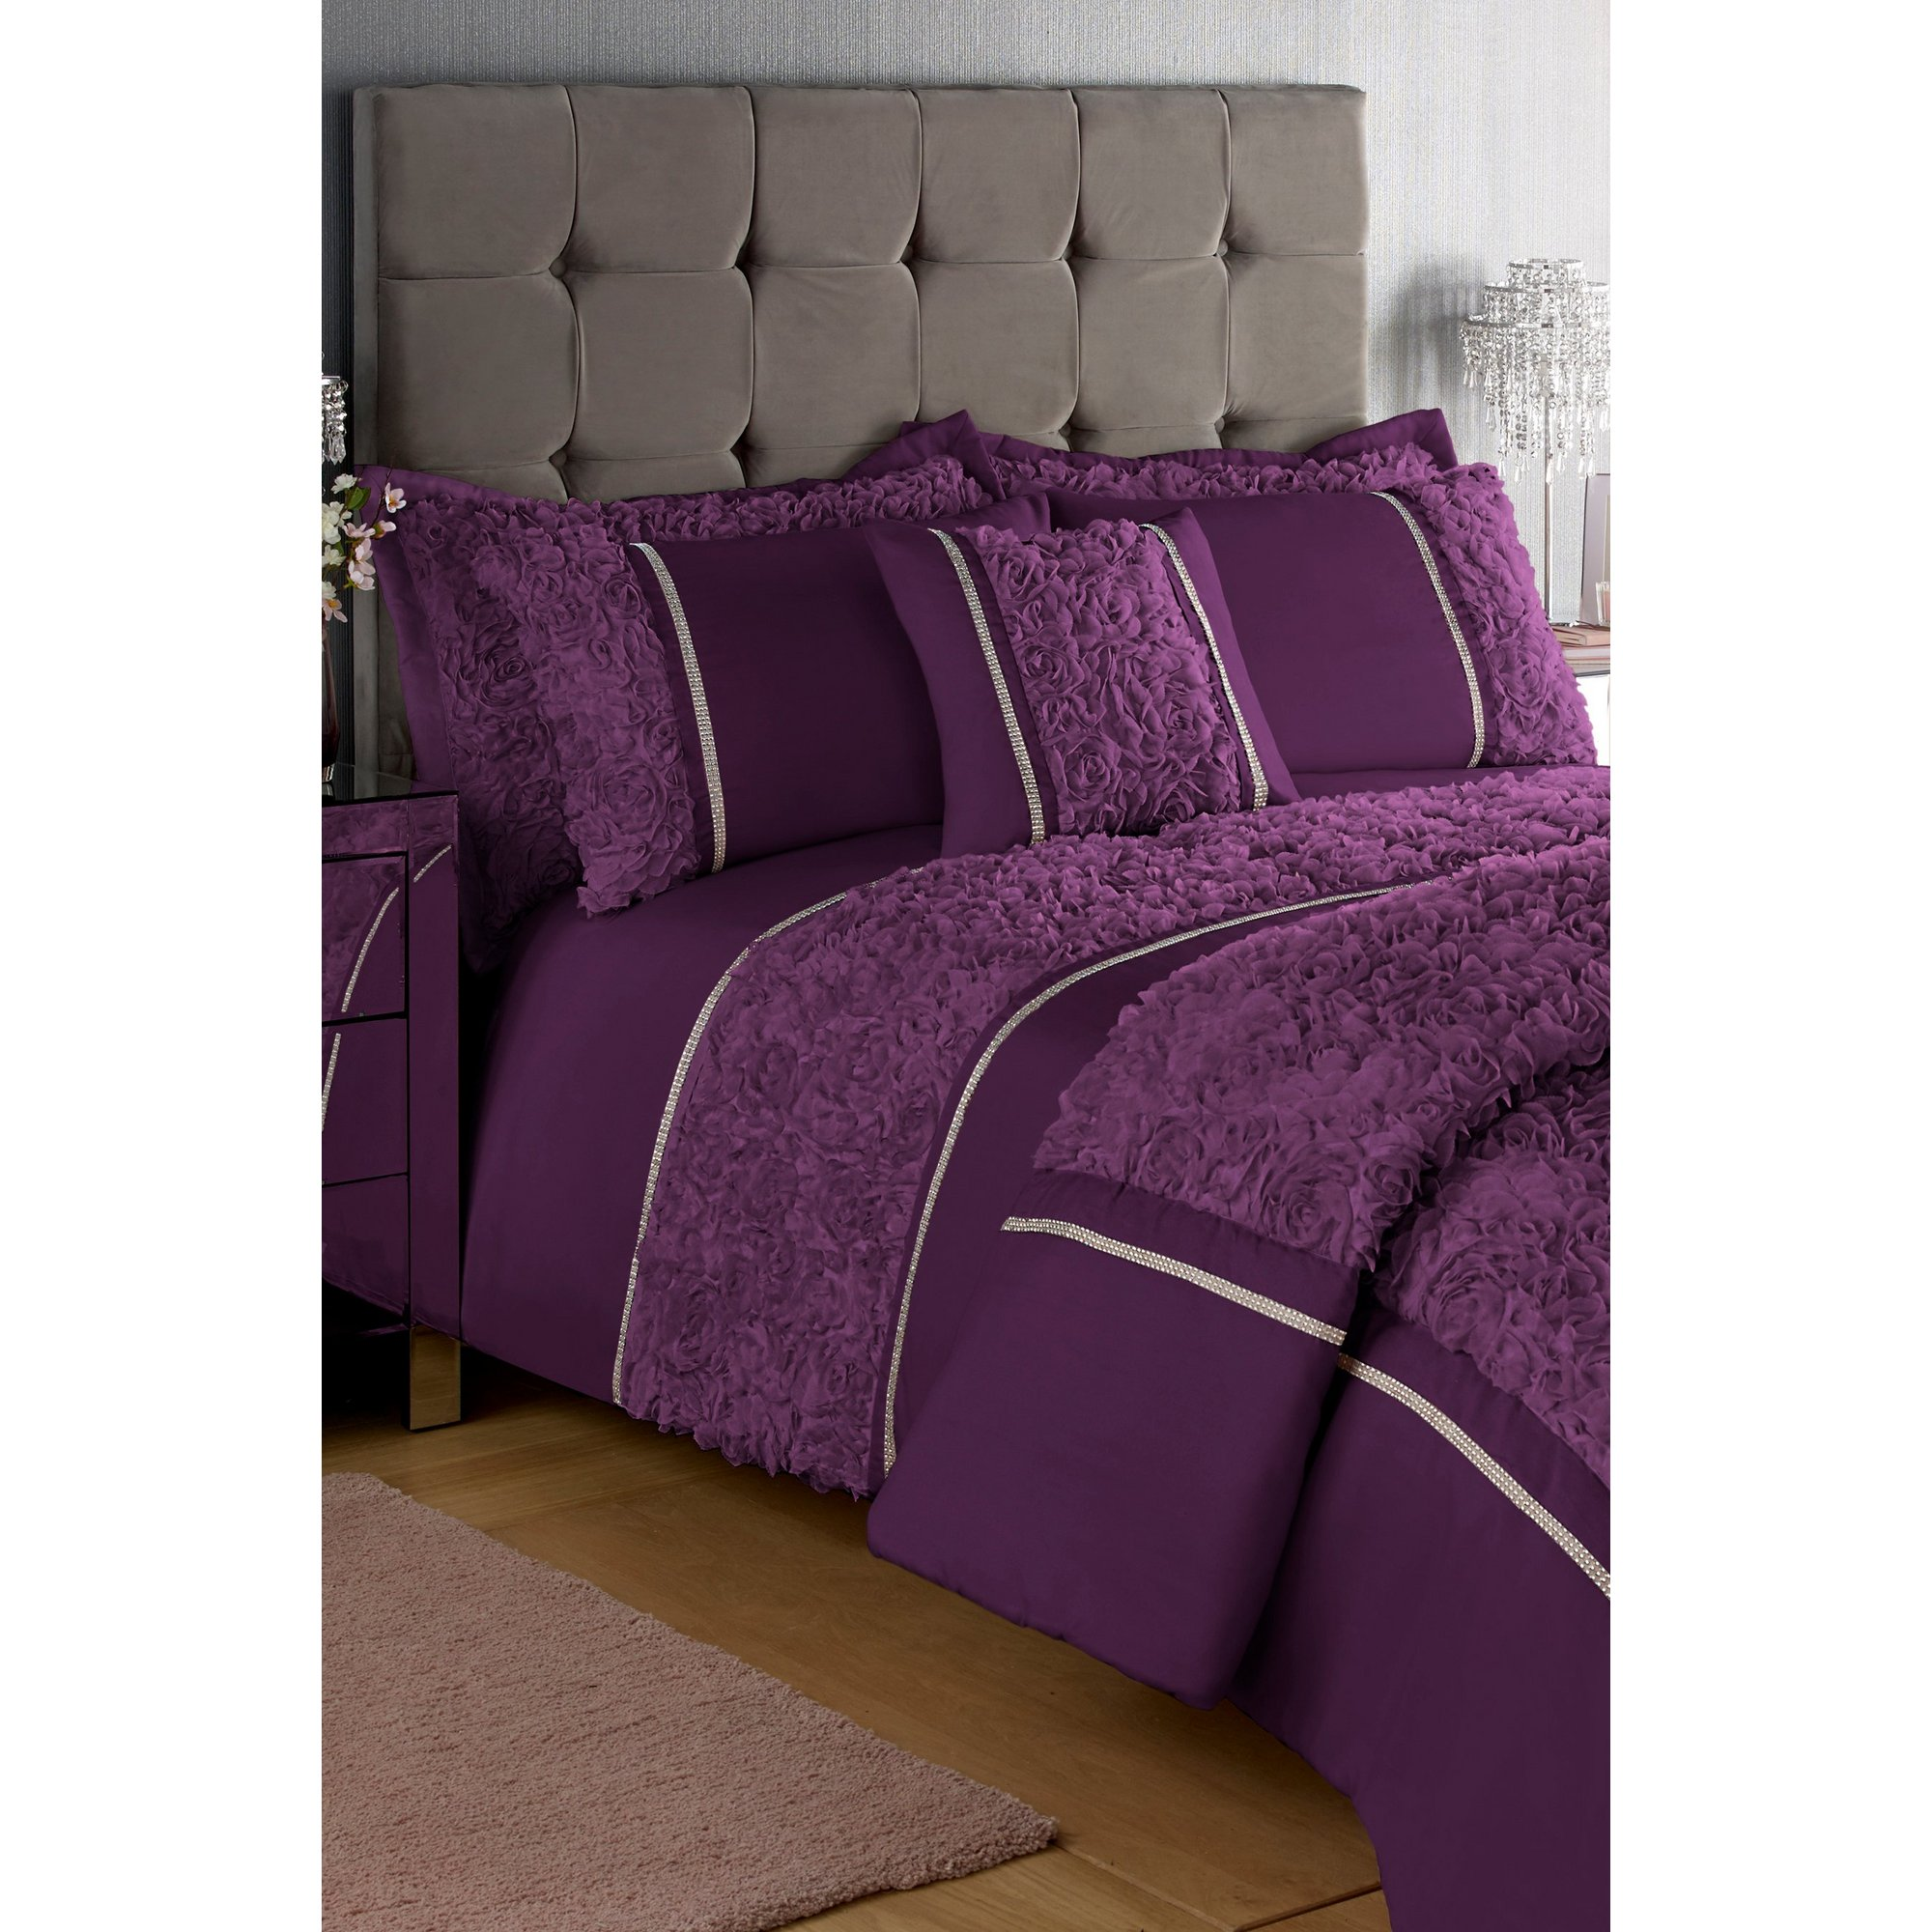 Image of 3D Pretty Floral Bedspread